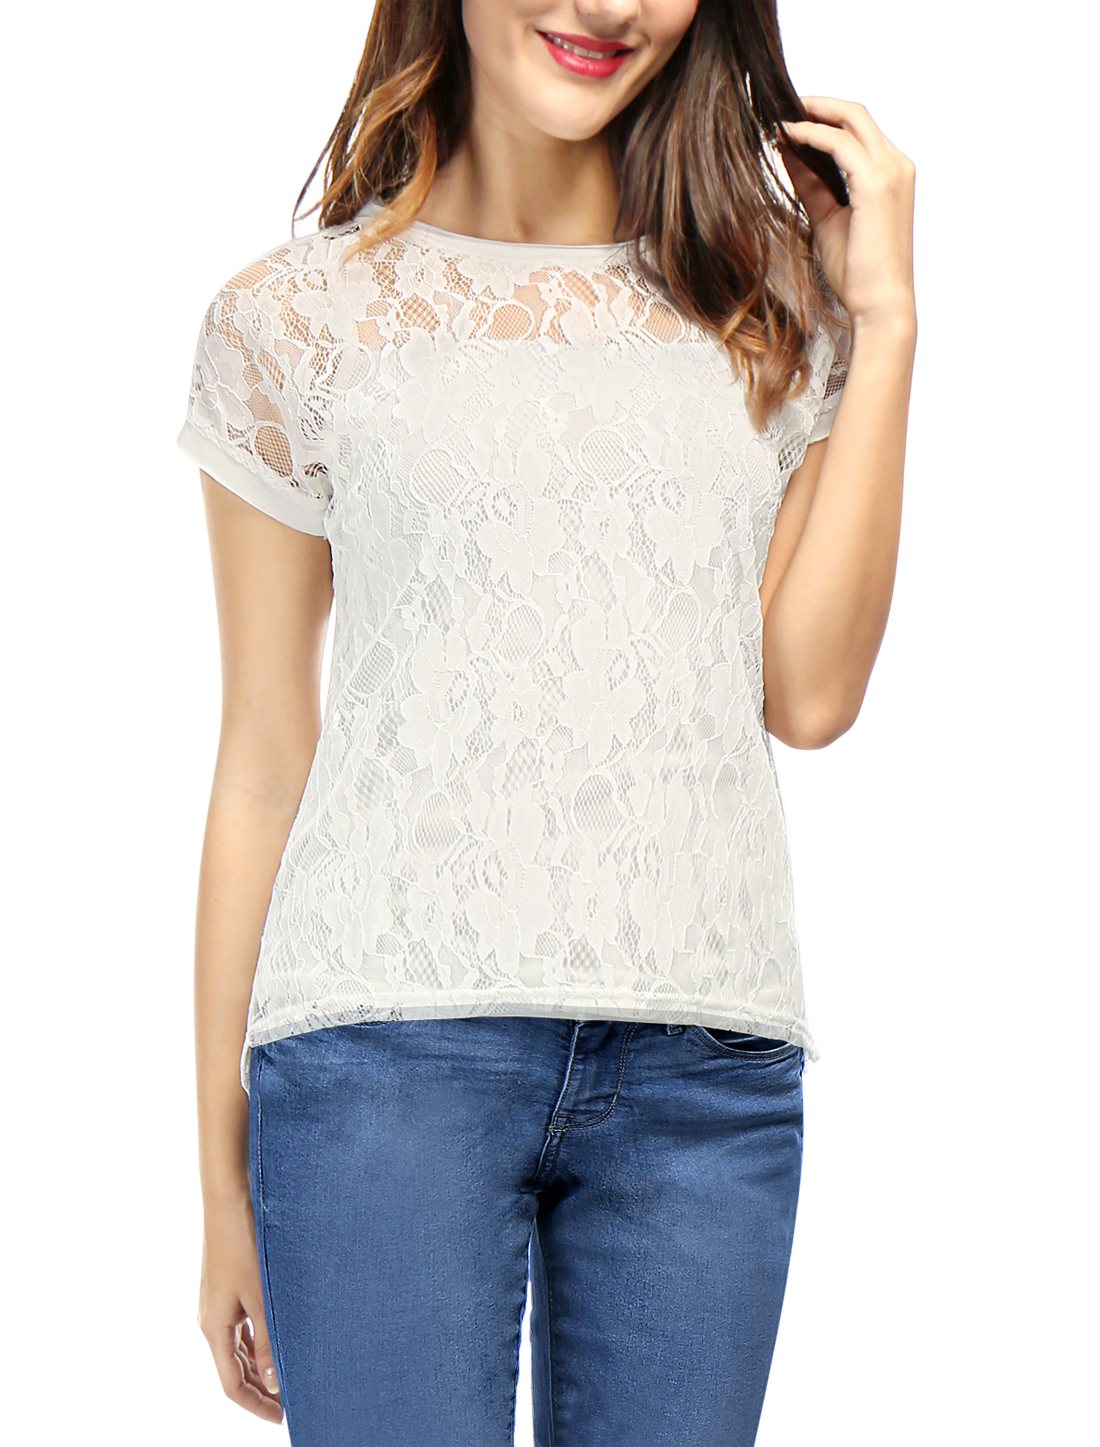 Women Curved Hem Sheer Short Sleeves Floral Lace Top White S